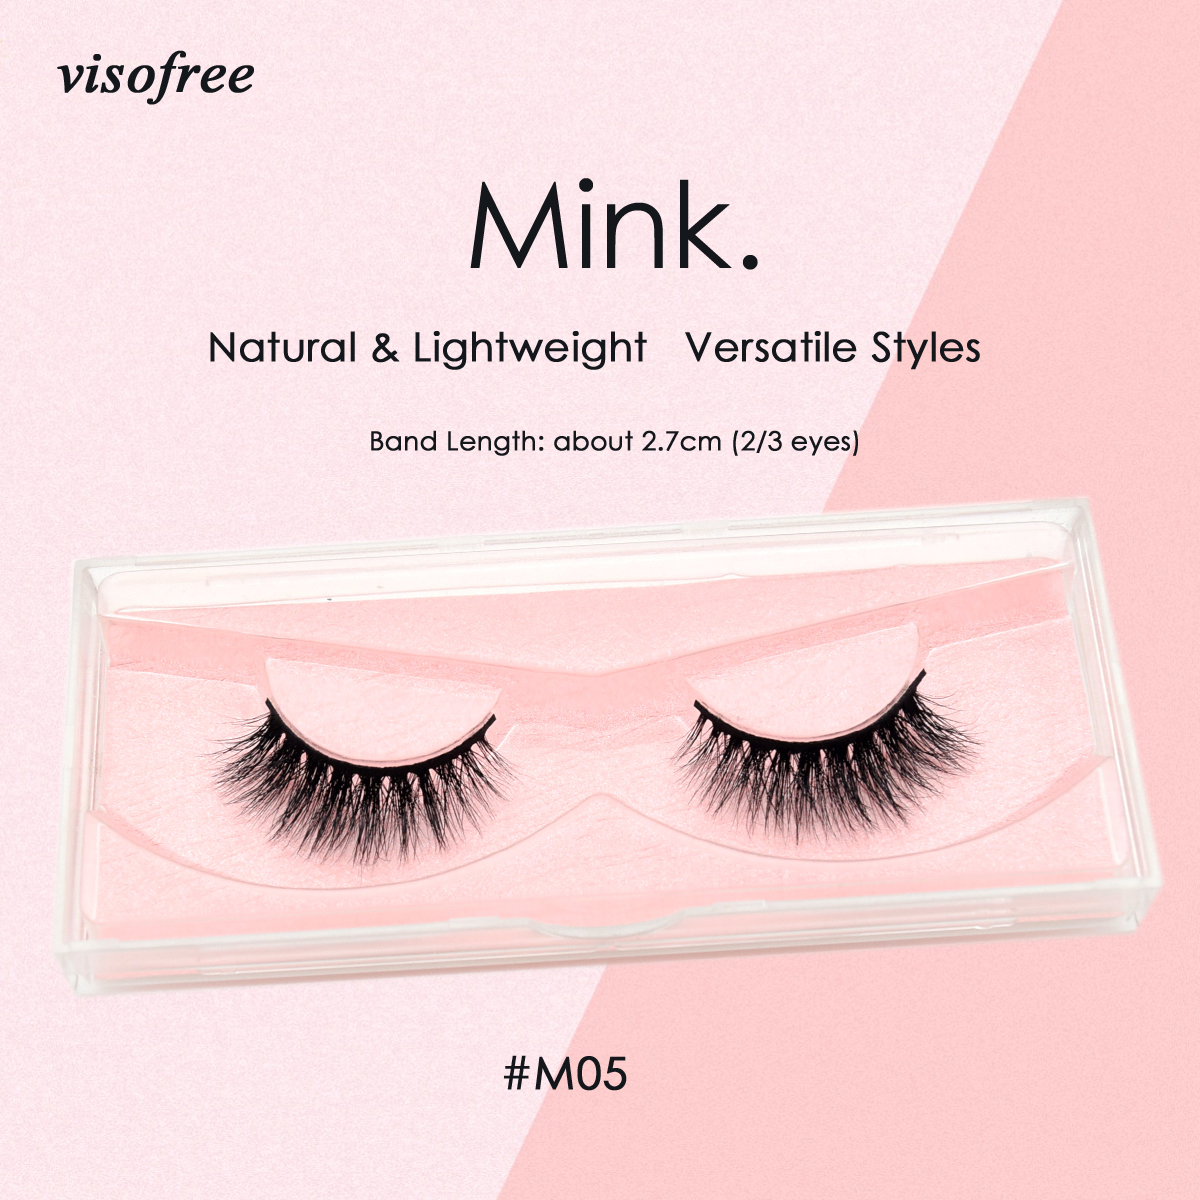 Visofree Lashes 3D Mink Lashes Cruelty Free Mink False Eyelashes Crisscross Handmade Mink Eyelashes For Makeup Faux Cils M05